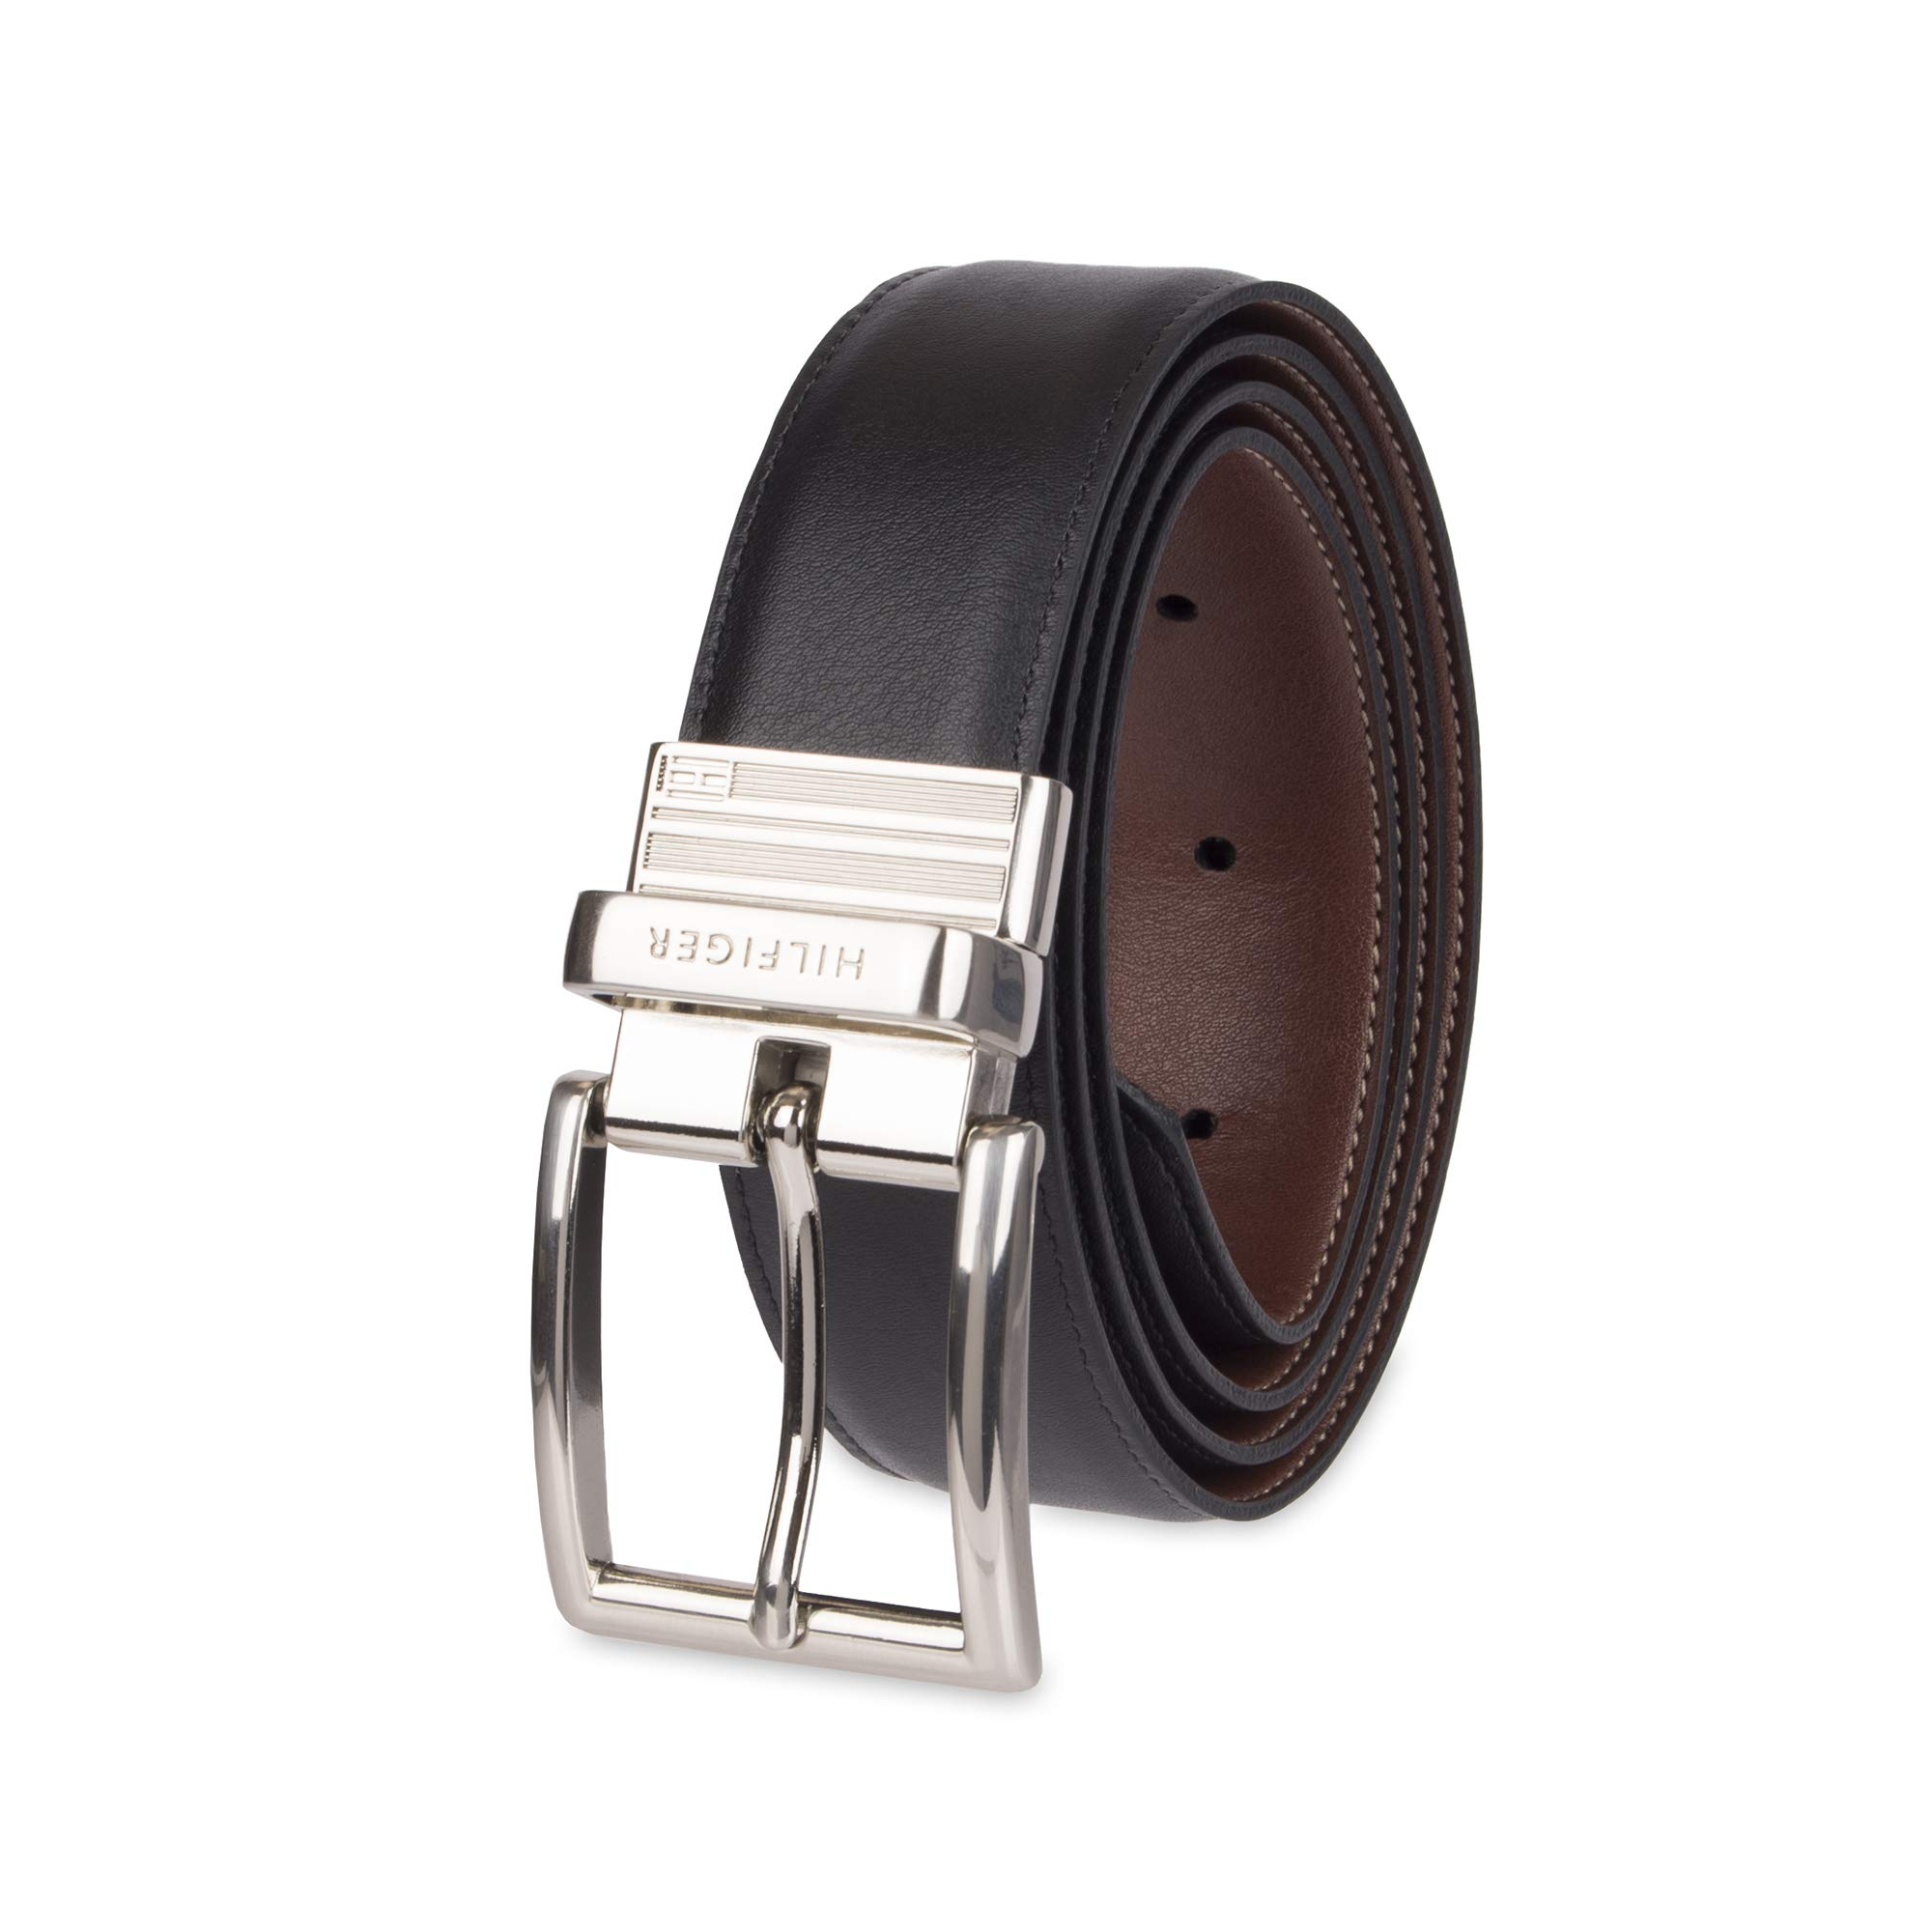 51cef4e142c4 Galleon - Tommy Hilfiger Reversible Leather Belt - Casual For Mens Jeans  With Double Sided Strap And Silver Buckle